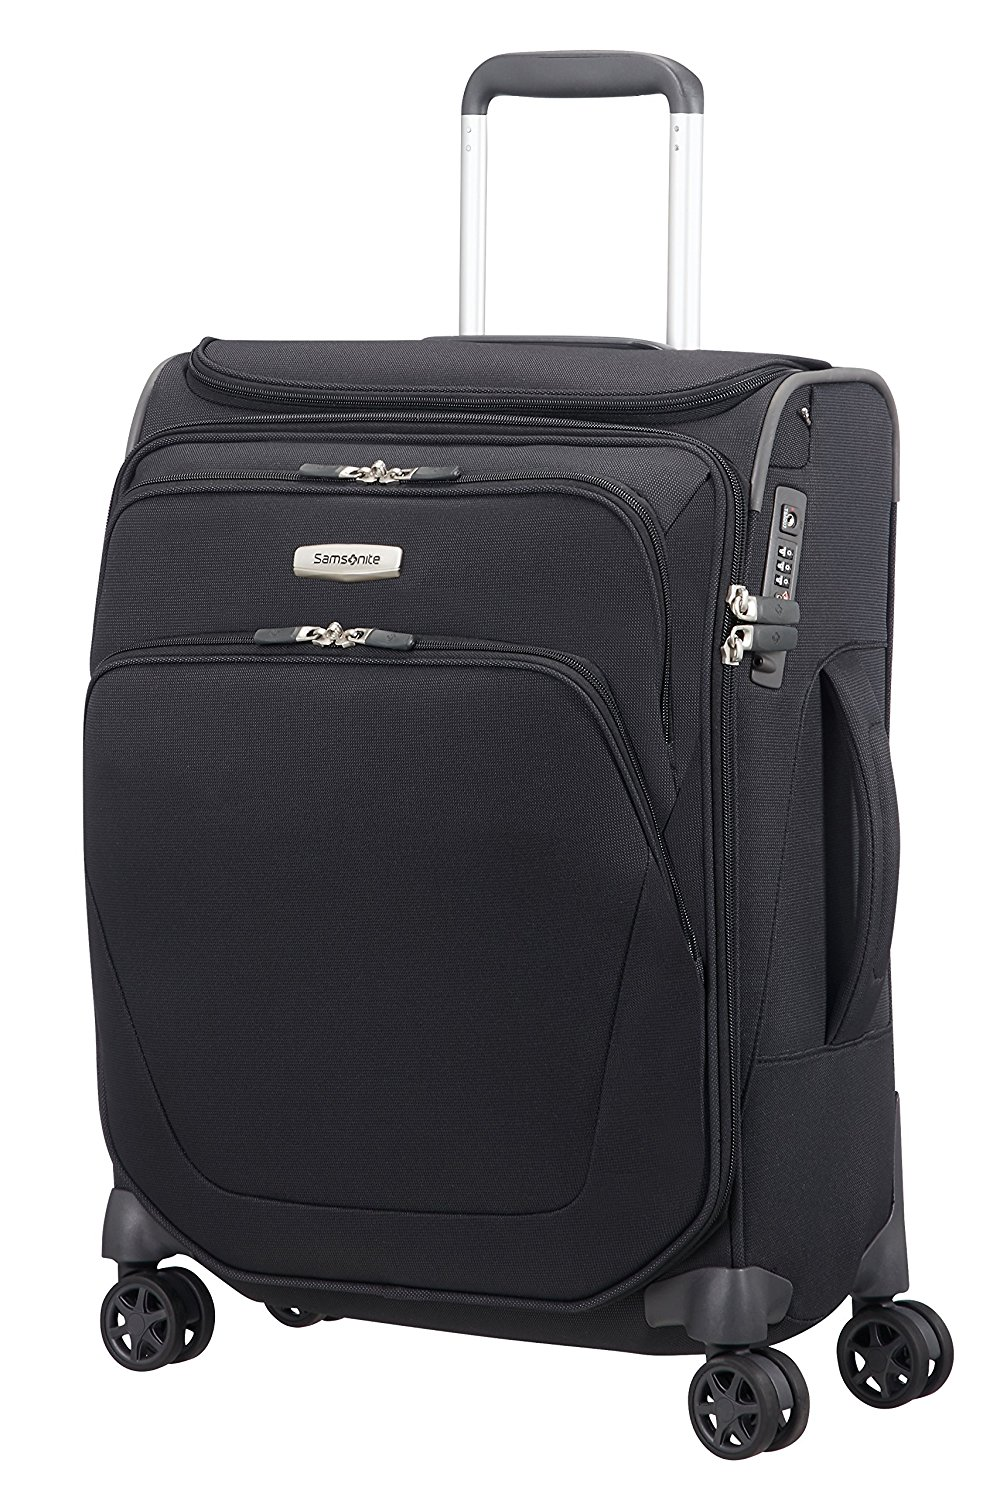 SAMSONITE Spark SNG - Spinner 55/20 with SmartTop Bagage cabine, 55 cm, 43 liters, Schwarz